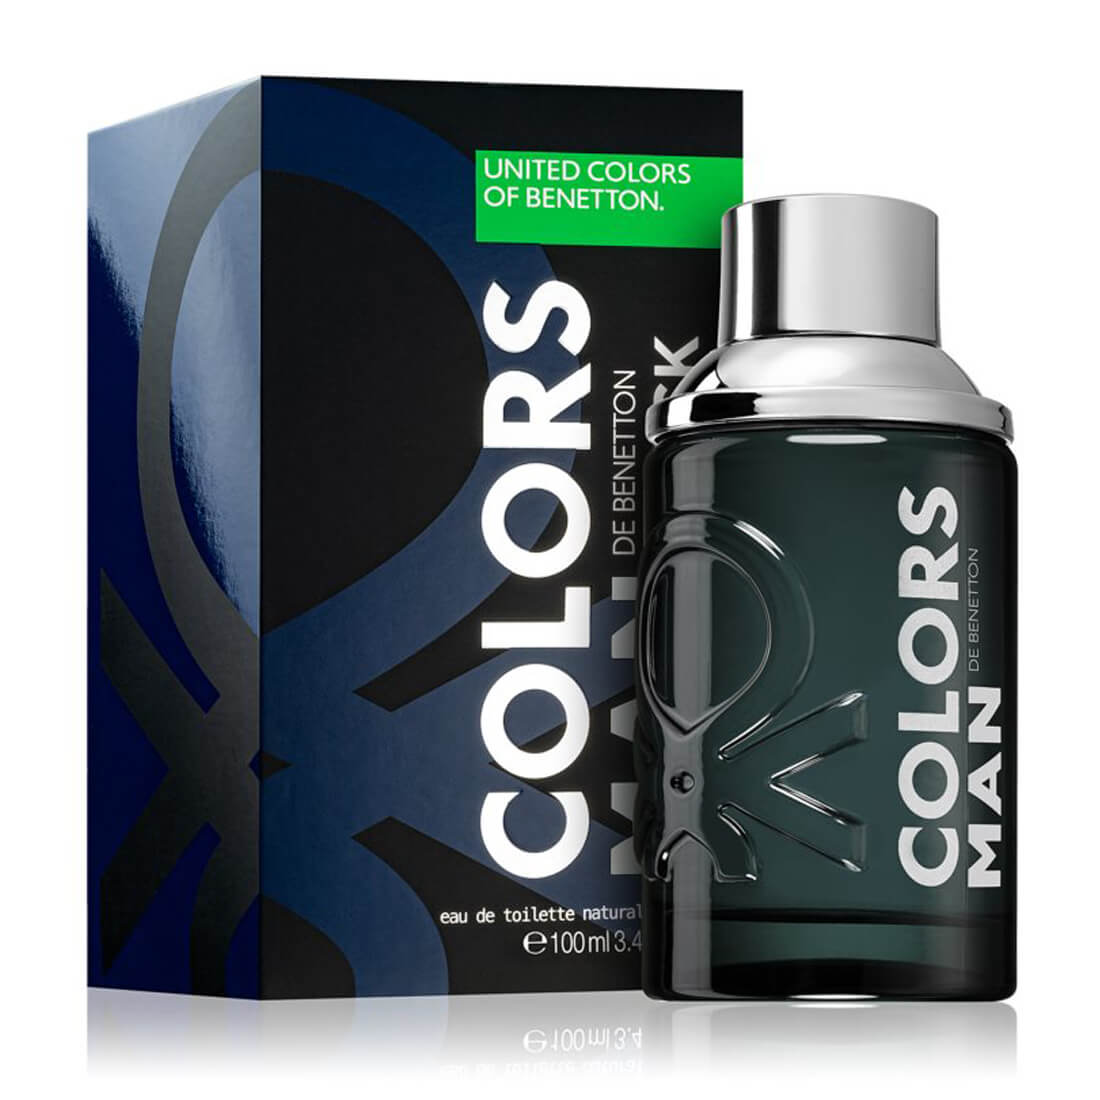 United Colors of Benetton Colors De Benetton Man Black Eau De Toilette For Men 100ml